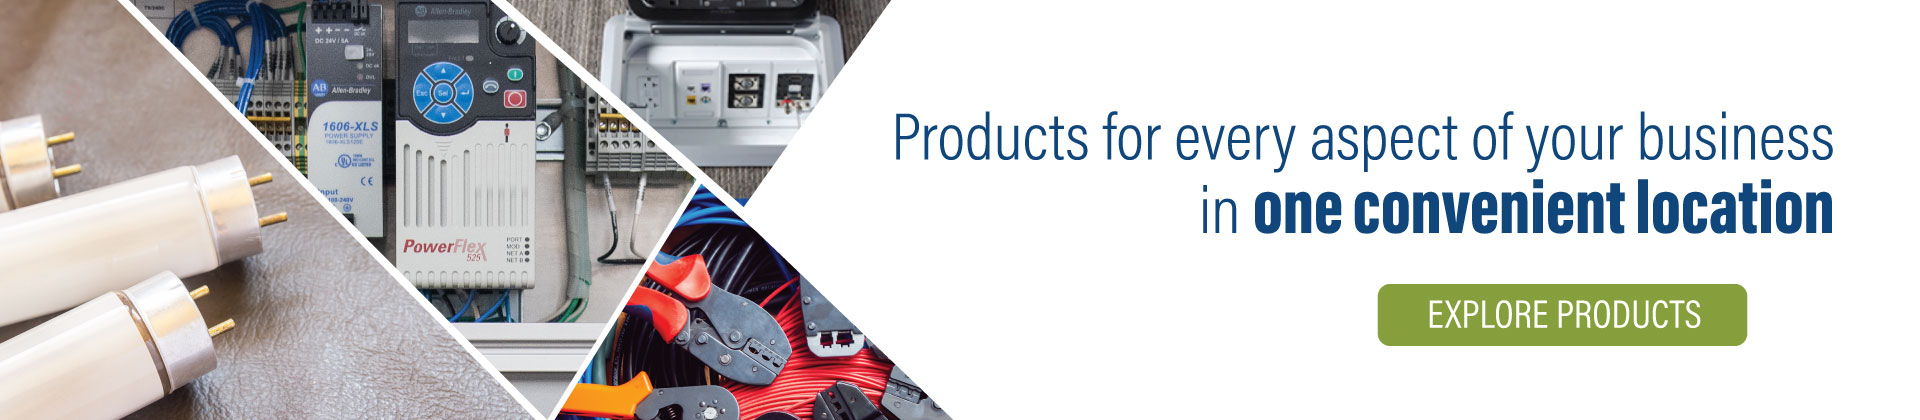 Products for every aspect of your business